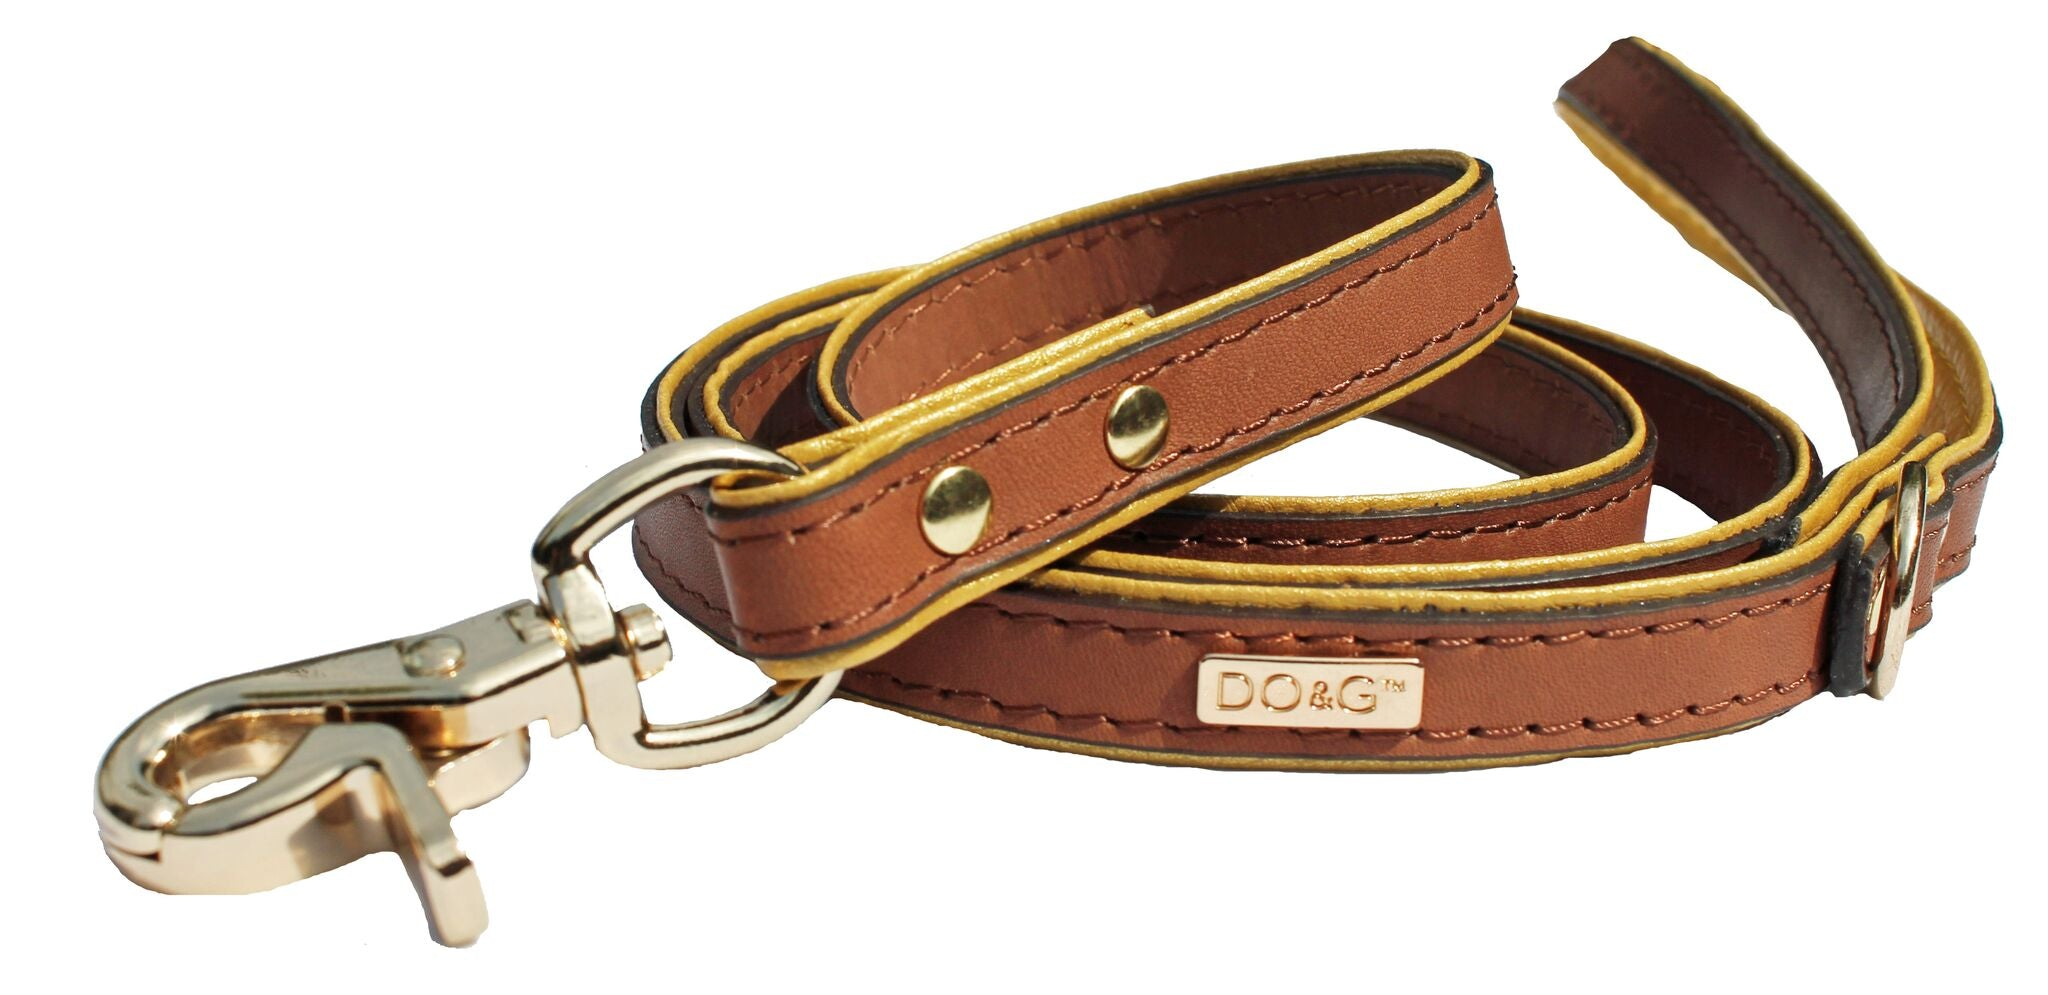 Manhattan Luxury Designer Leather Dog Lead In Brown - Posh Pawz Fashion